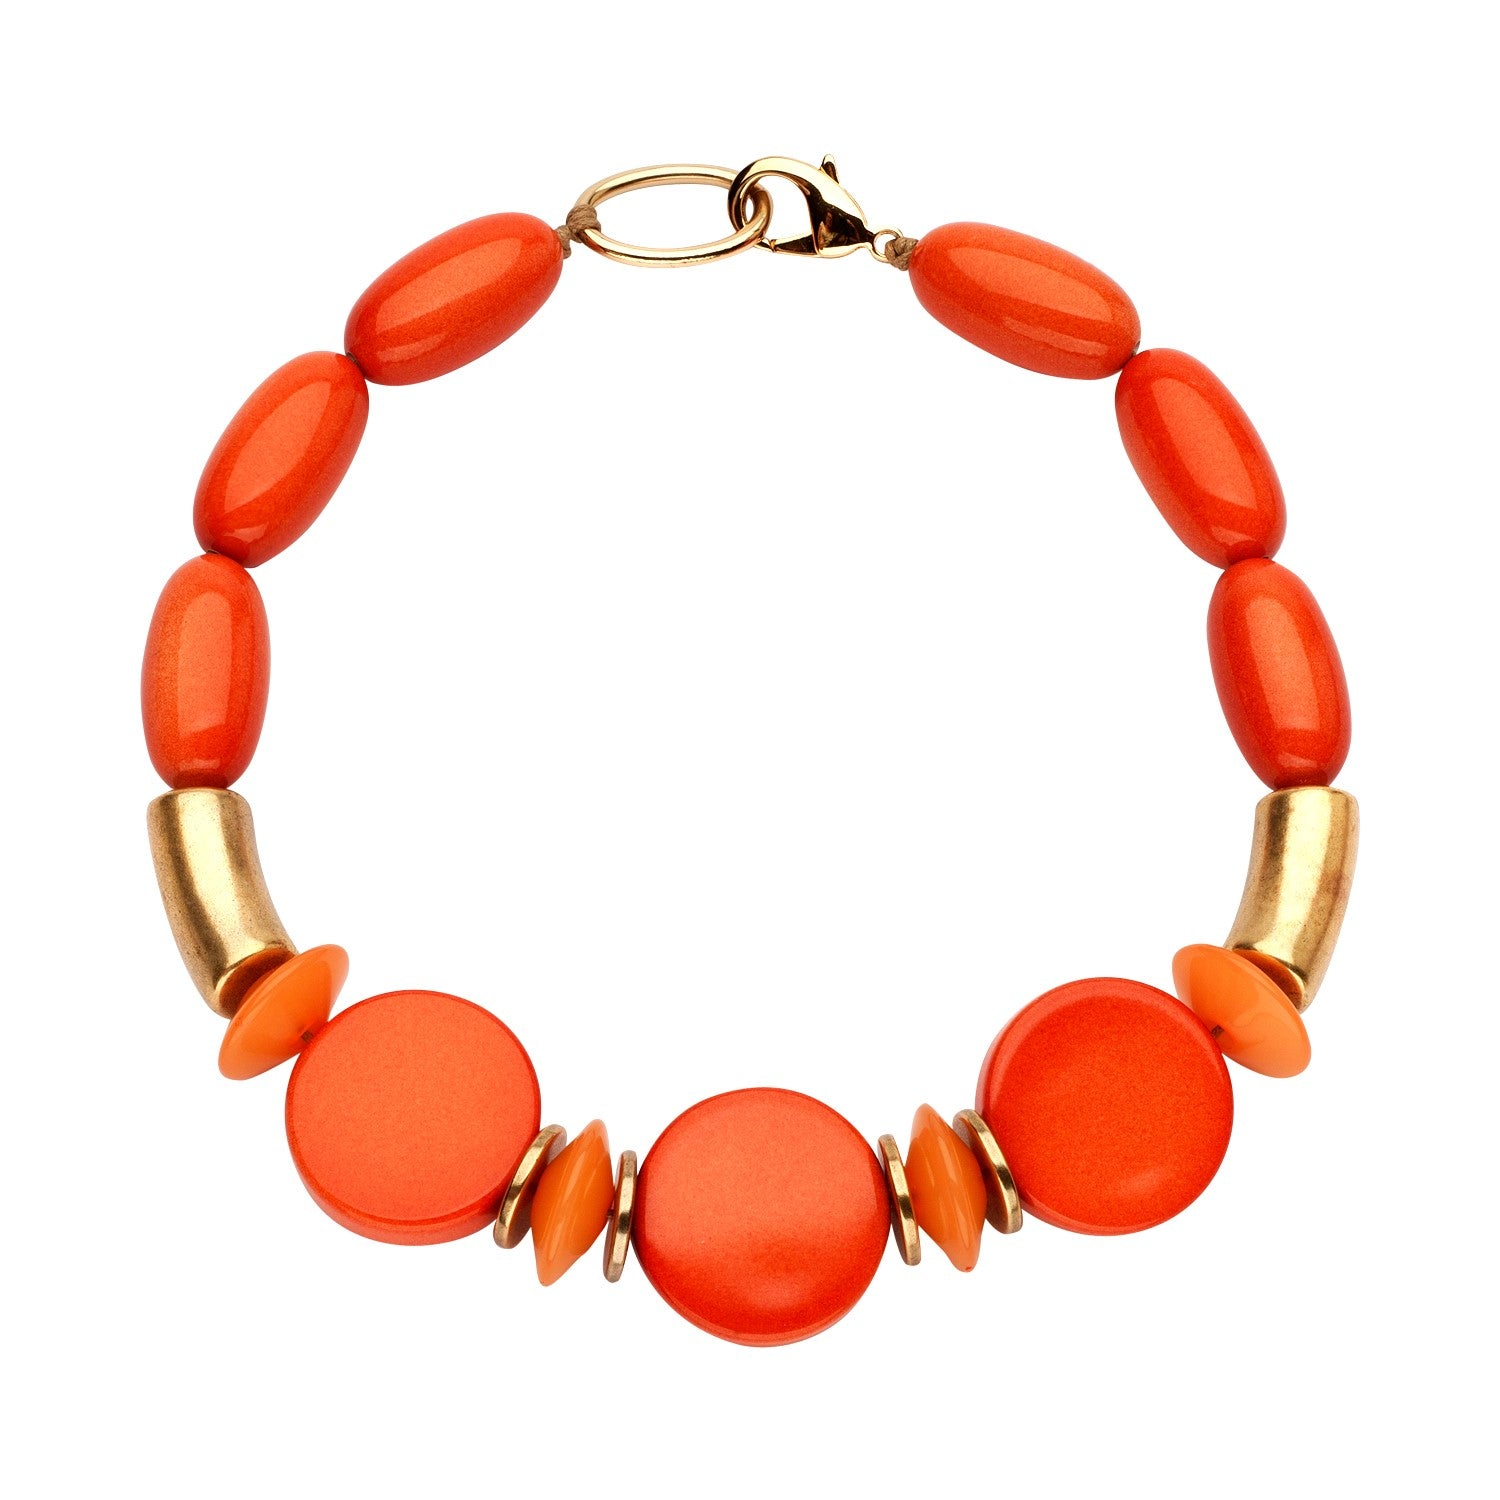 Beaded single necklace orange disks - Souvenirs de Pomme